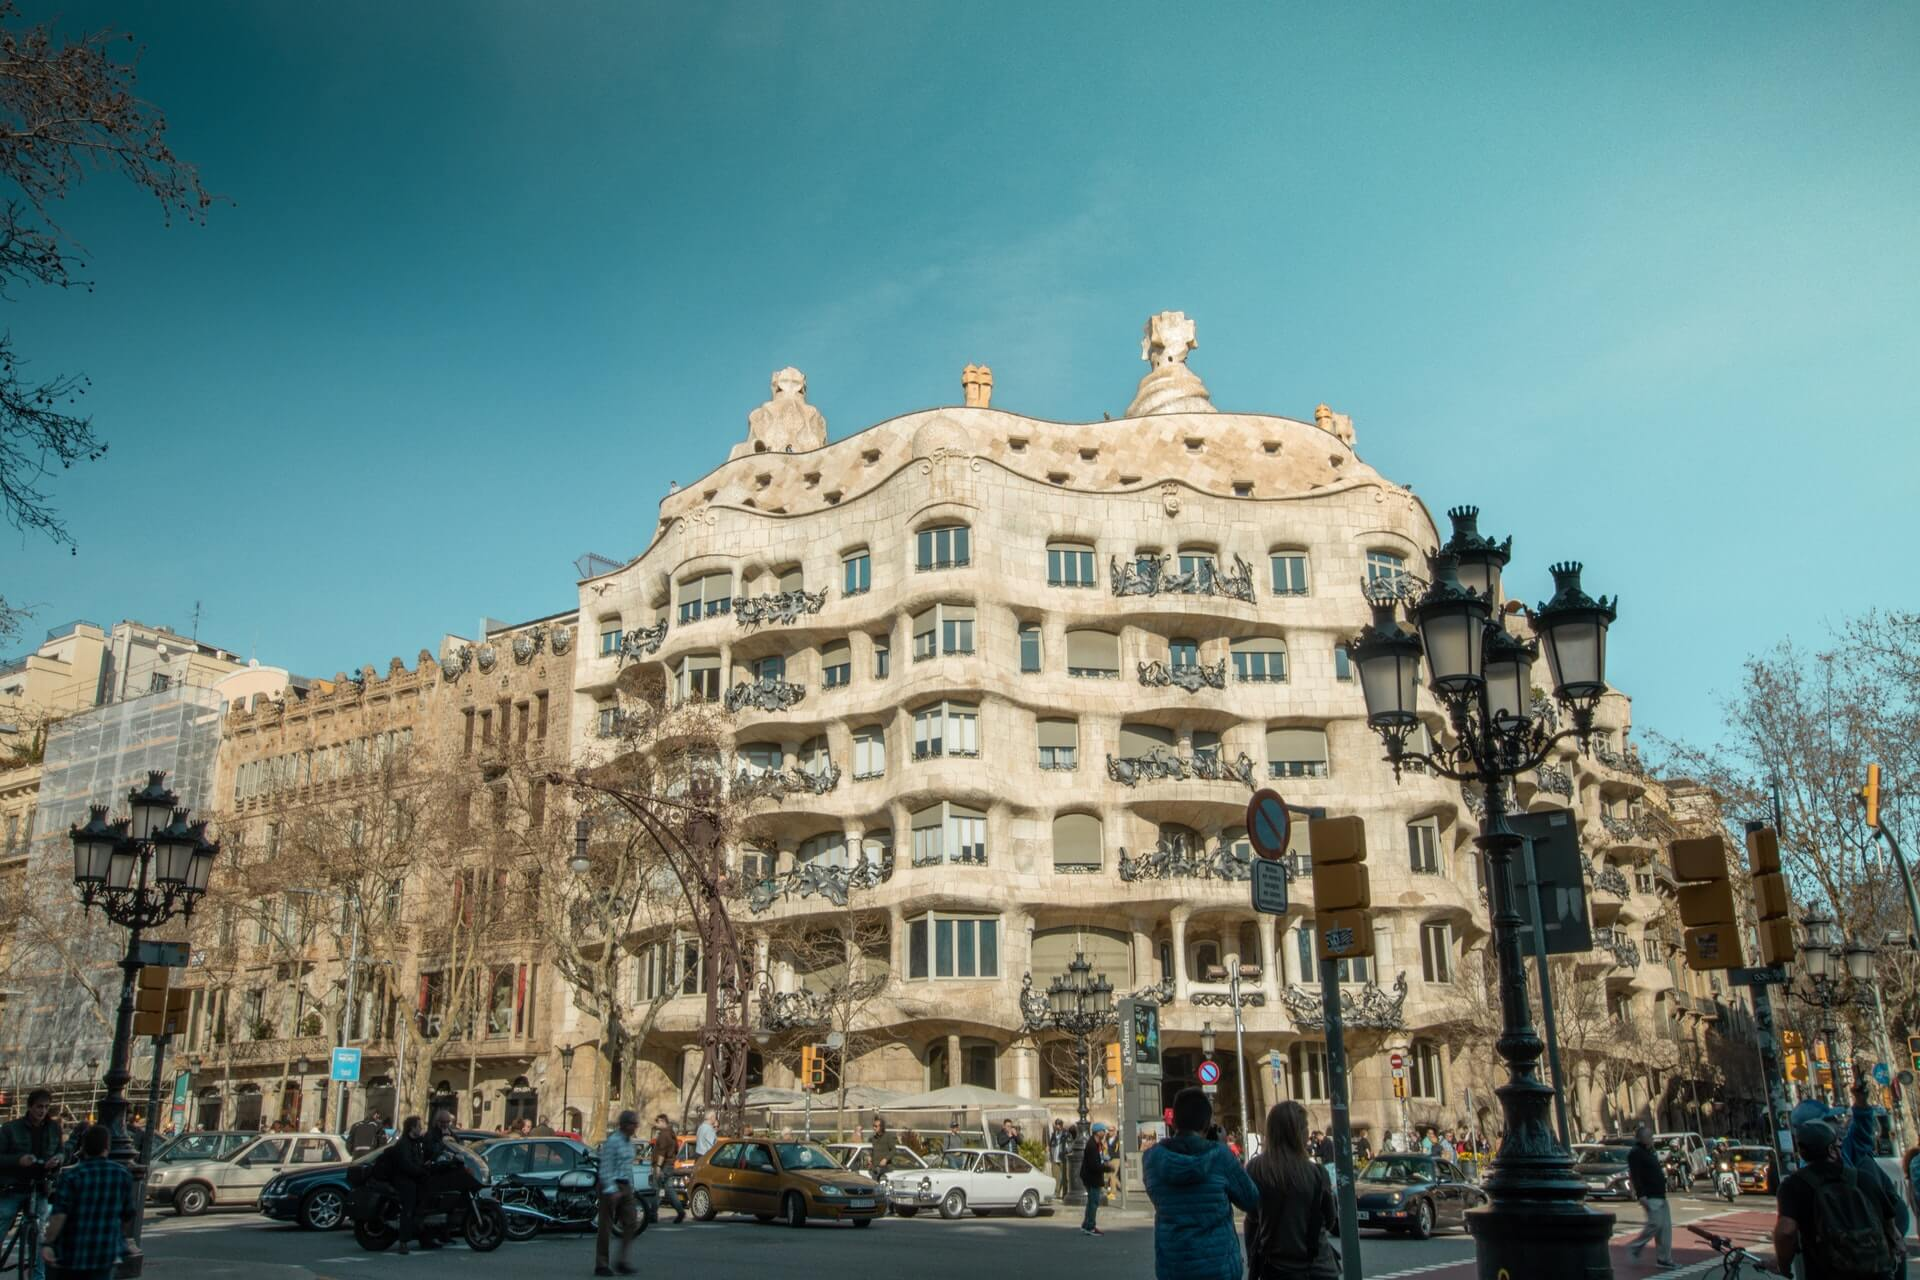 casa mila Photo by Max Photography from Pexels